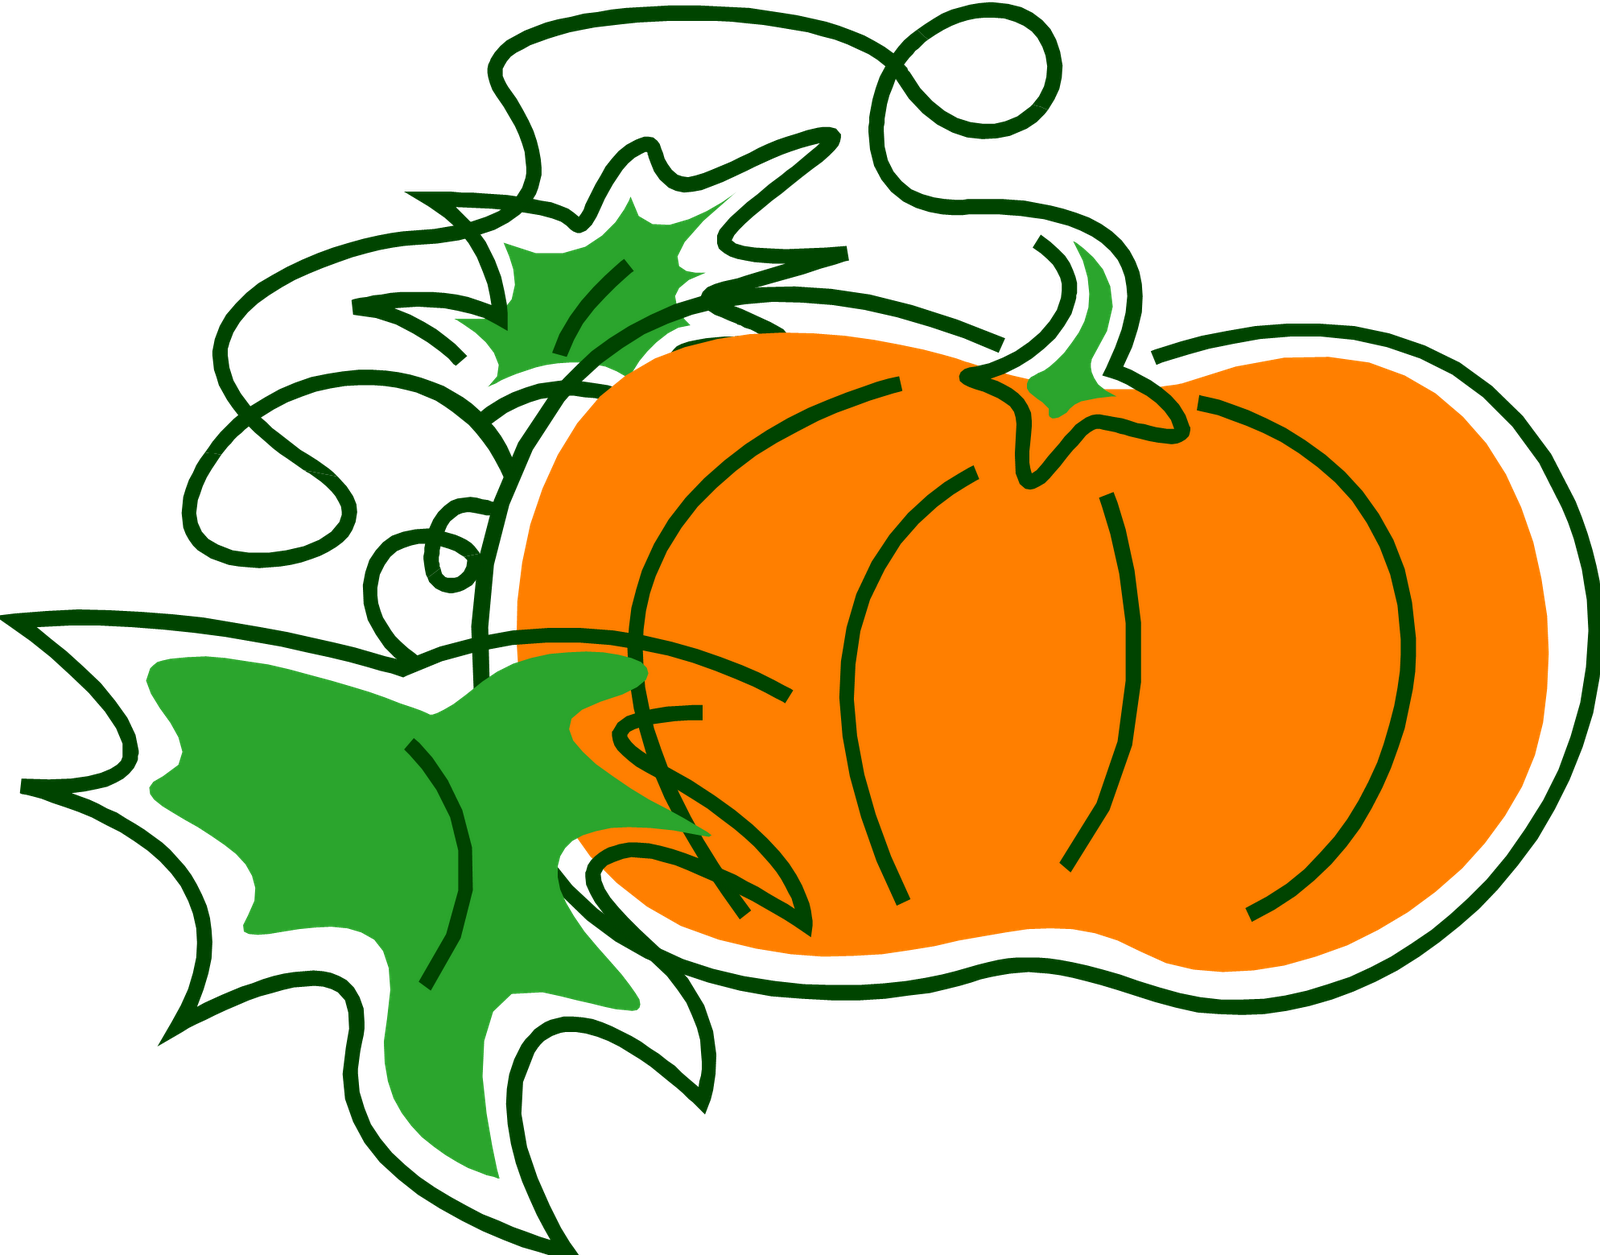 Pumpkin painting clipart vector transparent download Wadsworth Kids: Pumpkin Painting vector transparent download